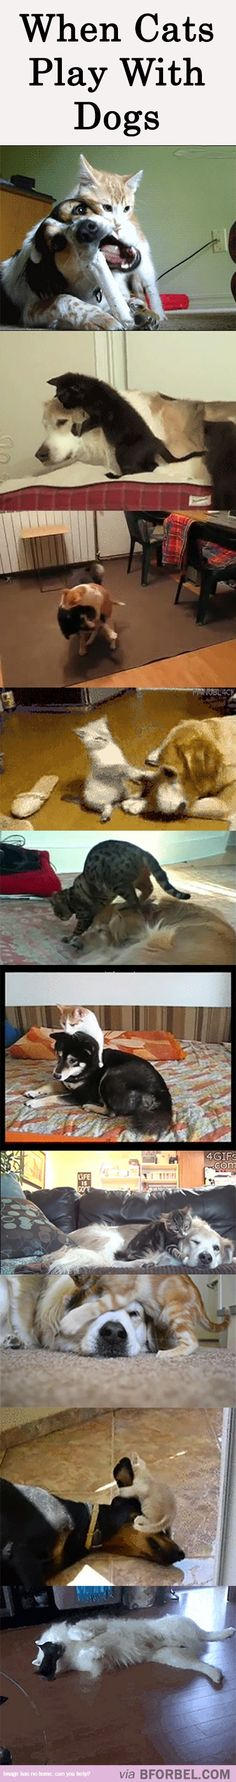 10 Cats And Dogs Happily Playing Together…